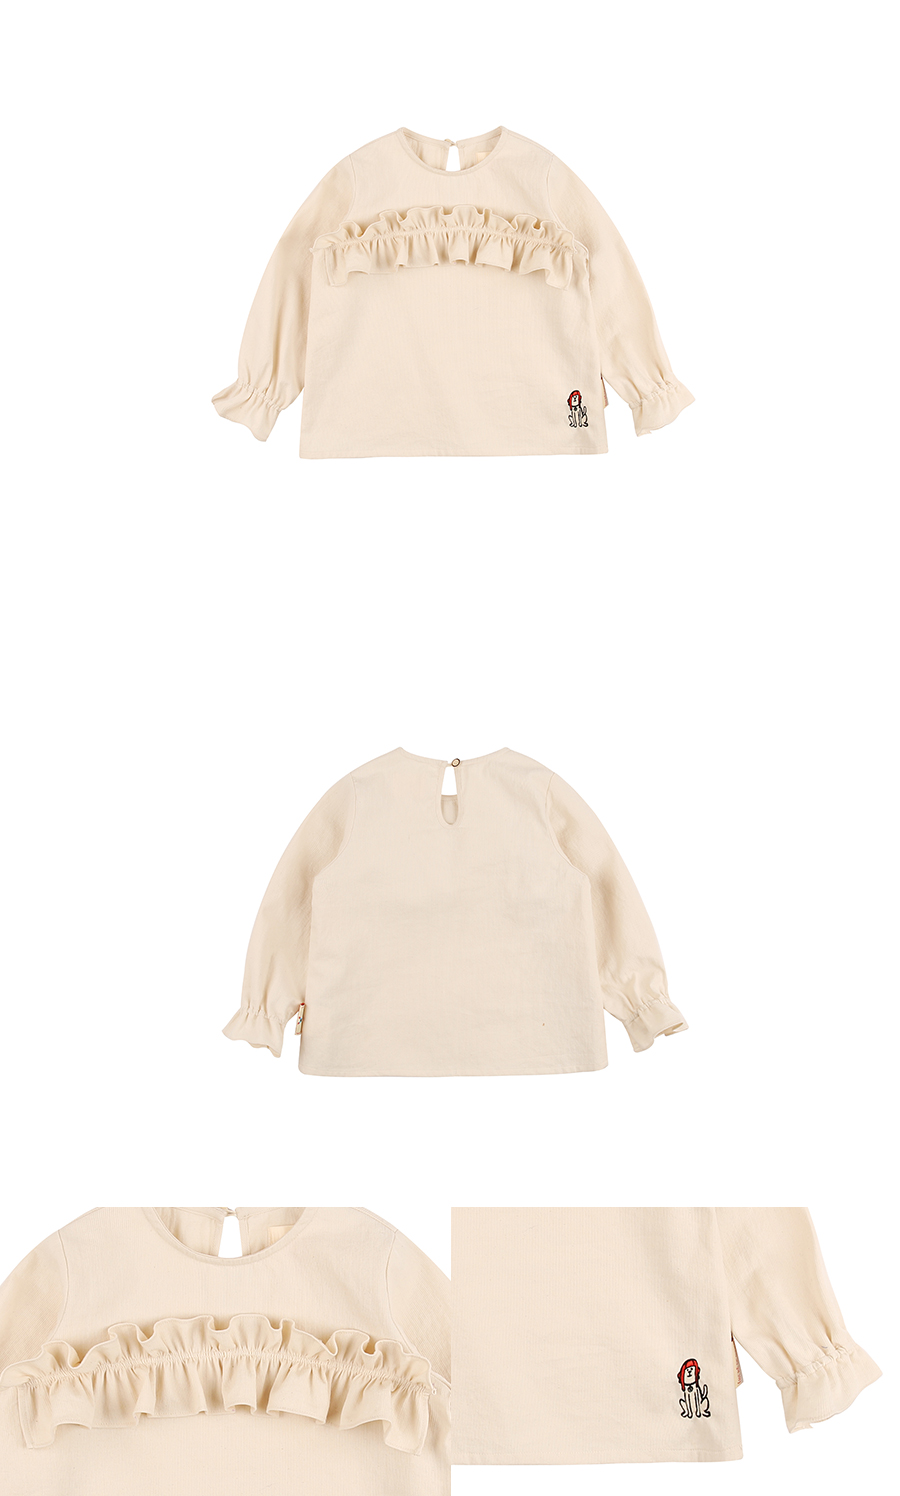 Puppy ruffle cotton blouse 상세 이미지